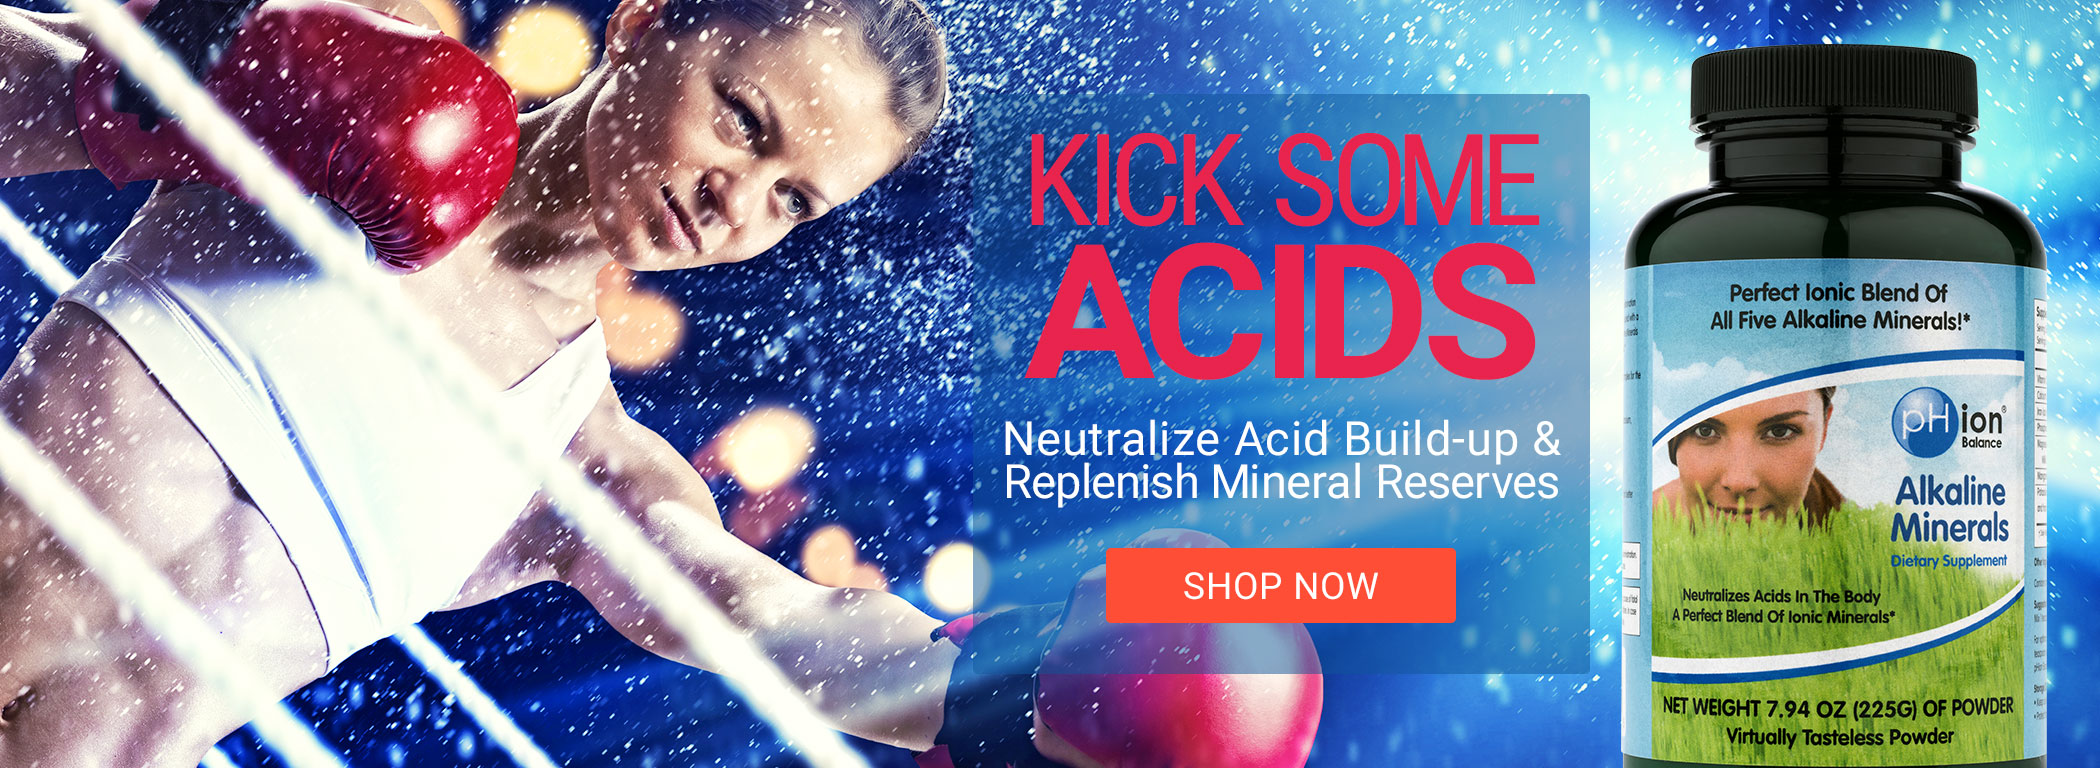 Kick Some Acids!